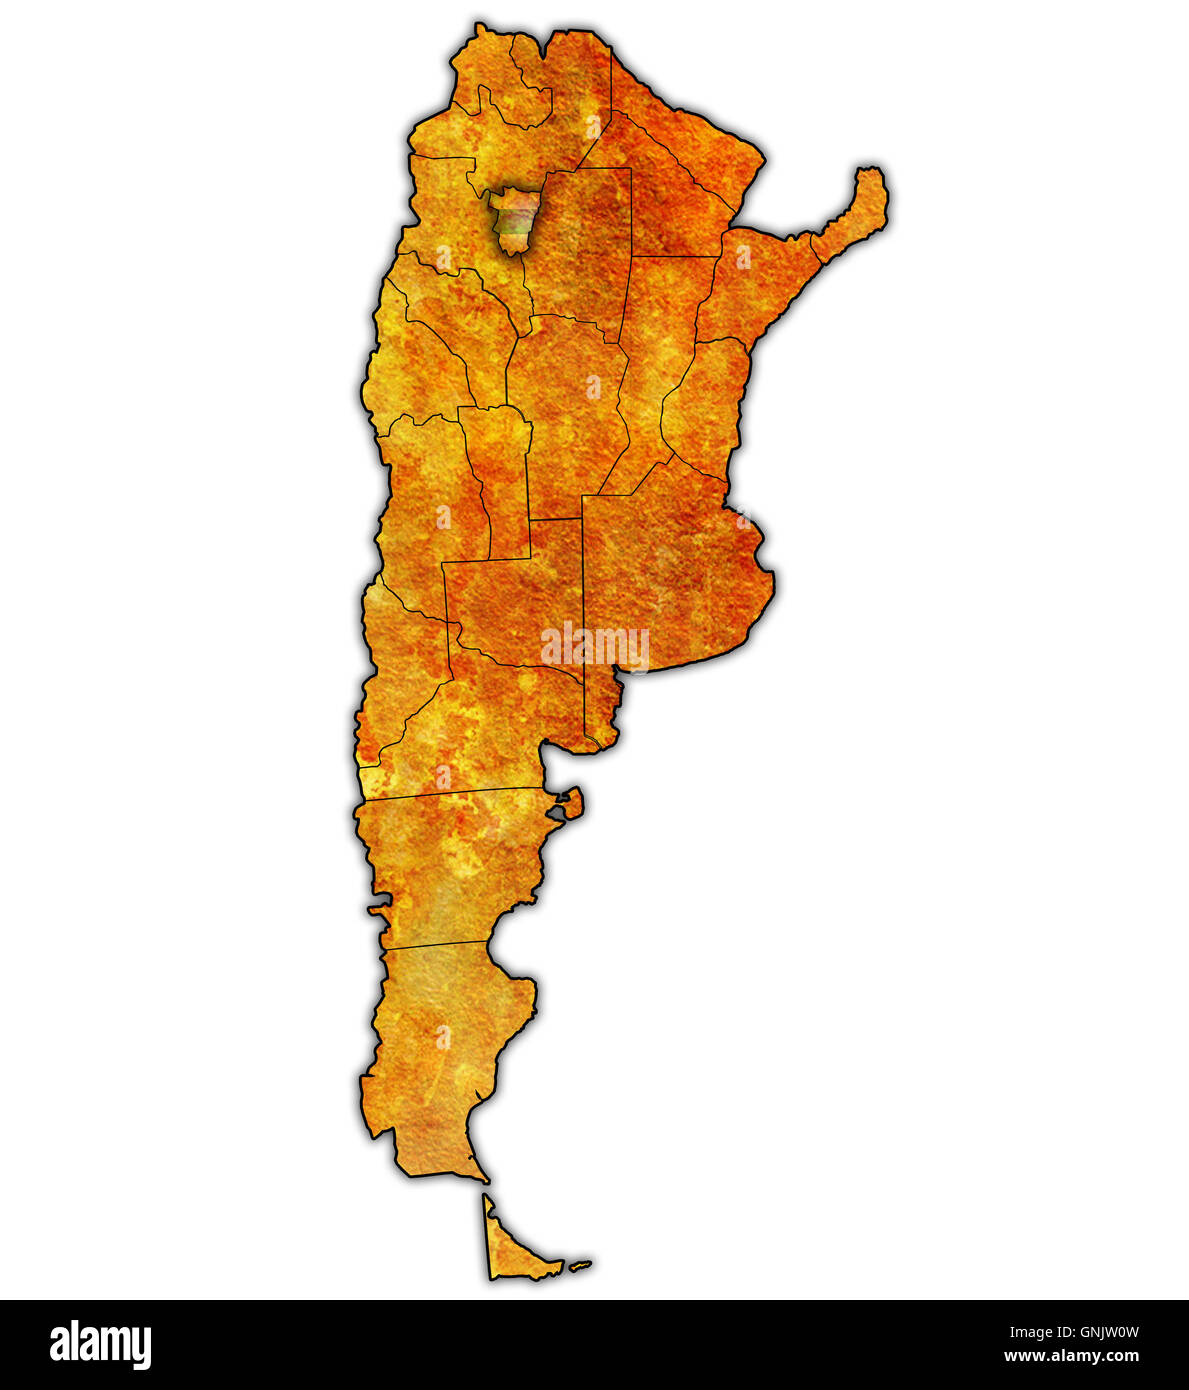 Tucuman Region With Flag On Map Of Administrative Divisions Of - Argentina map tucuman